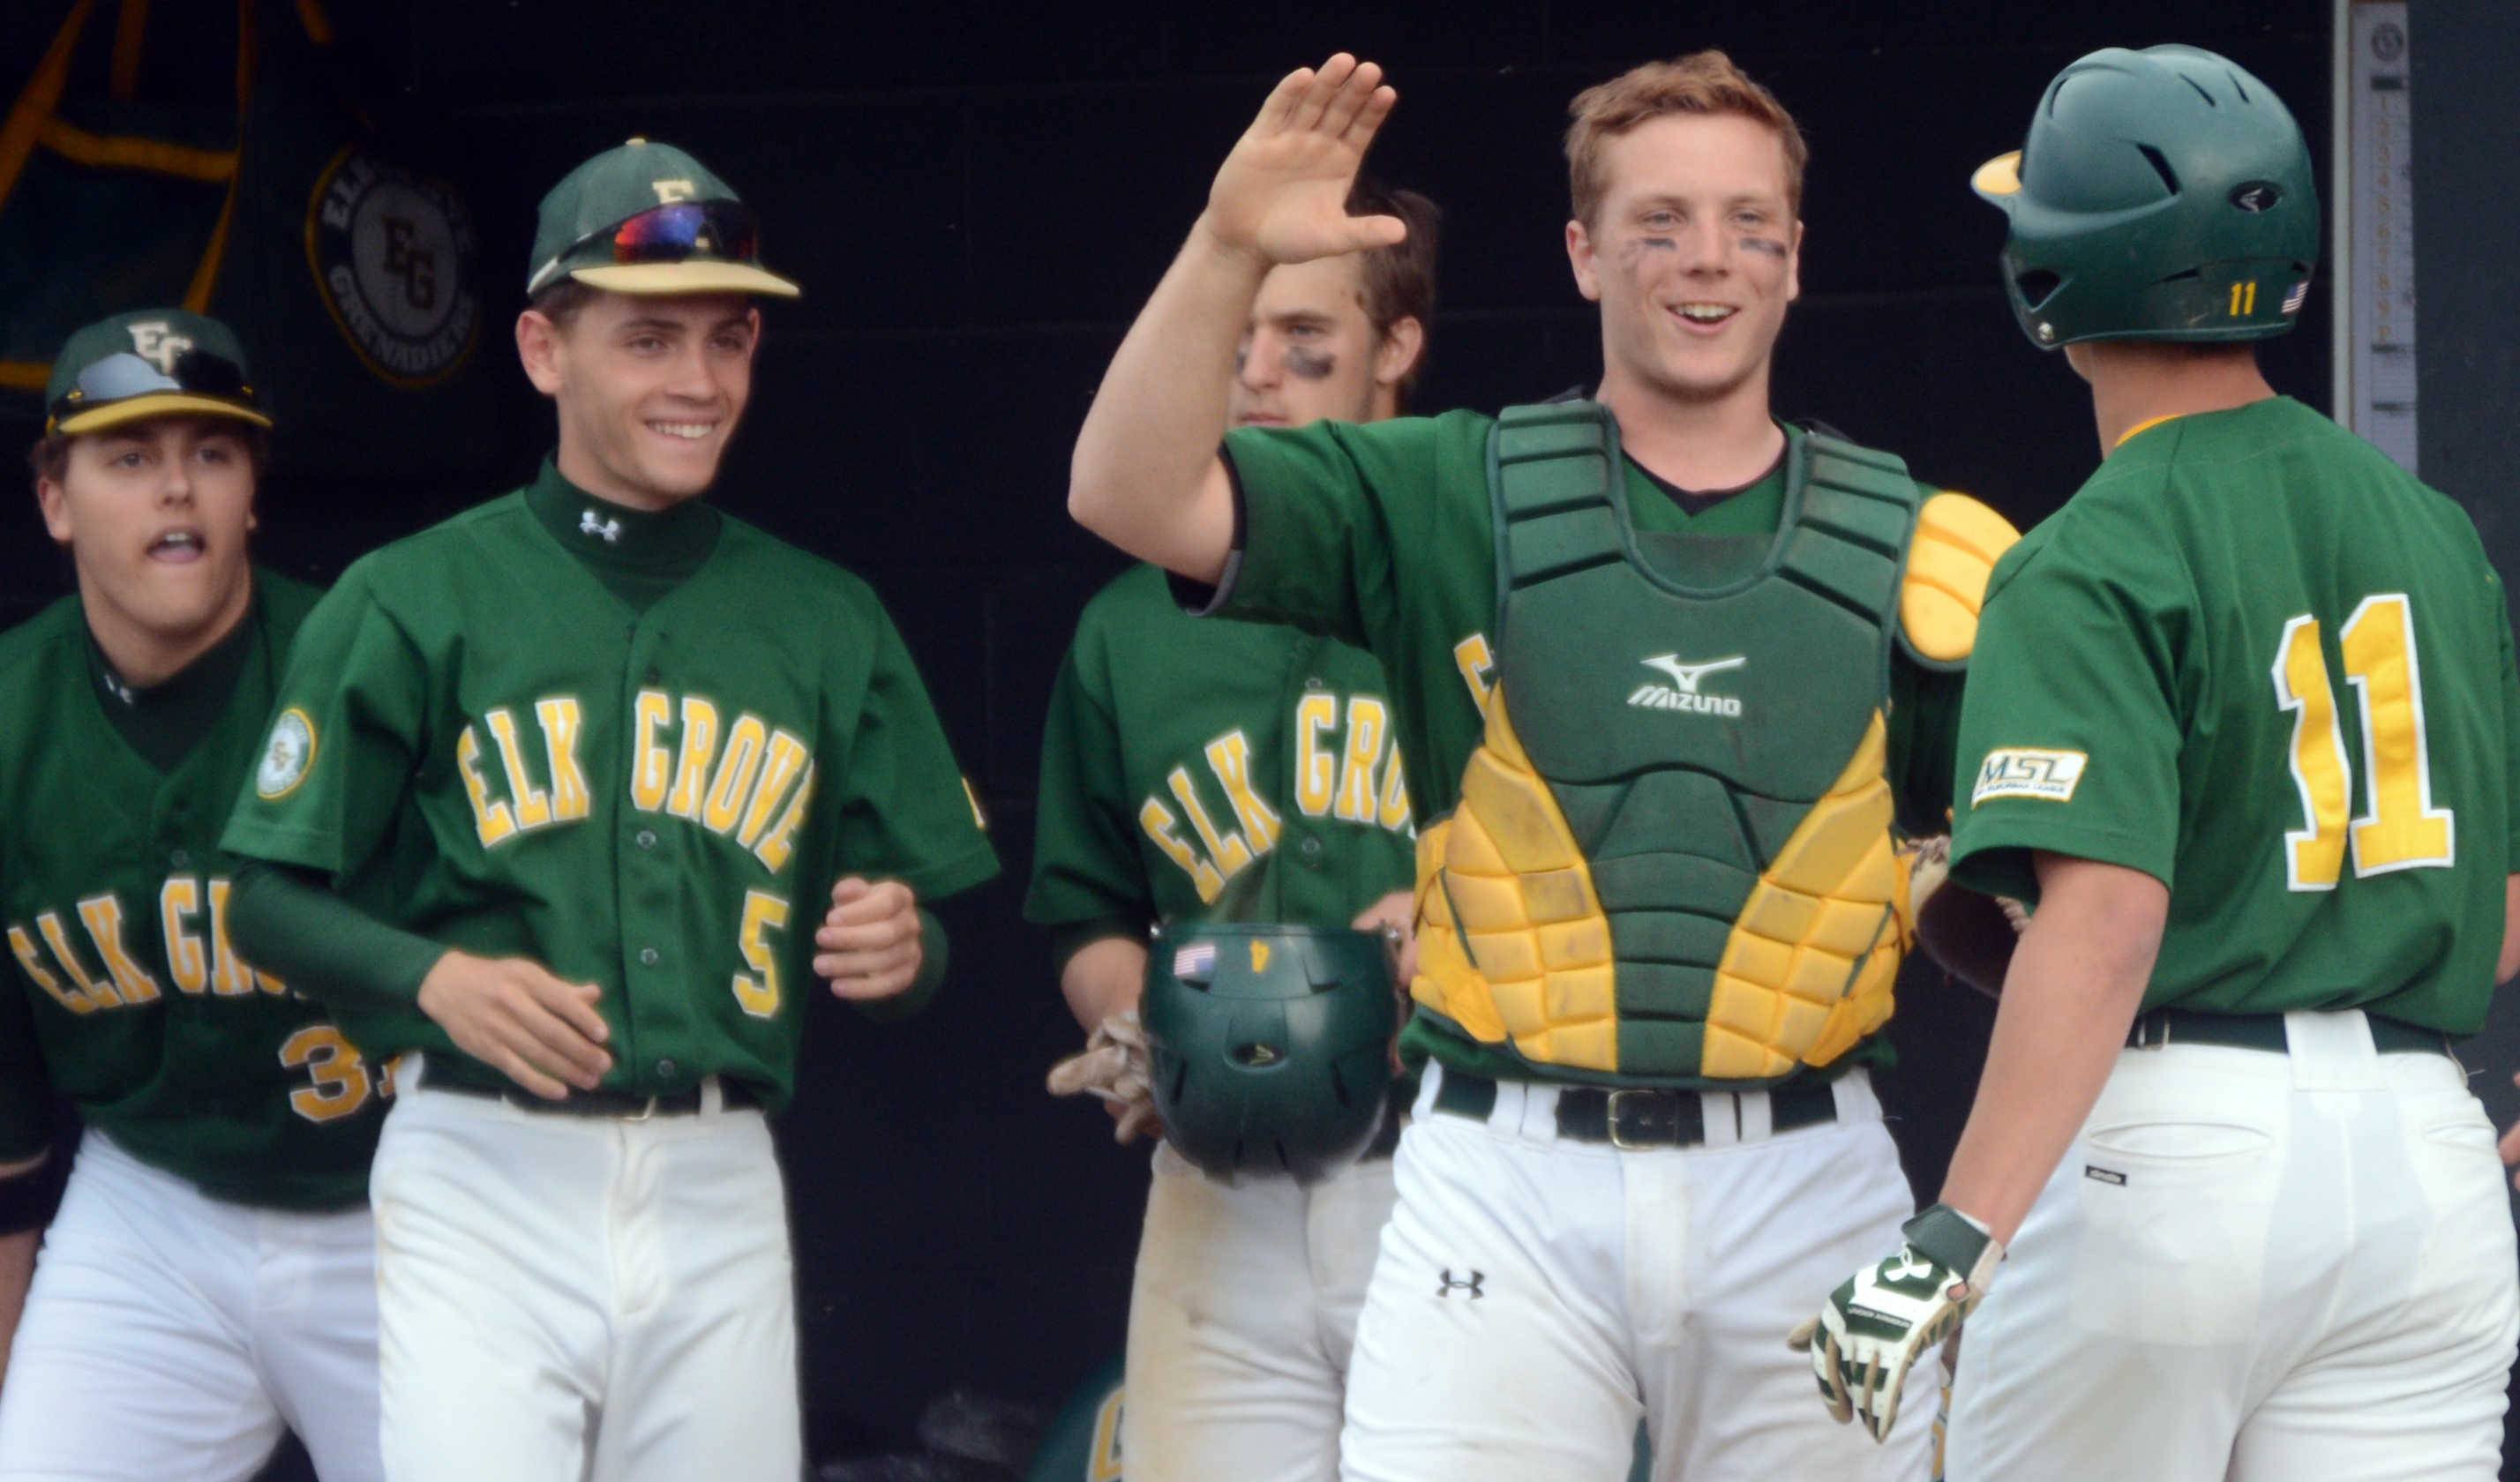 Elk Grove's Brandon Post, right, is received in the dugout by catcher Sean Fege, center, and others after Post scored against Schaumburg in Elk Grove's 6-2 win.